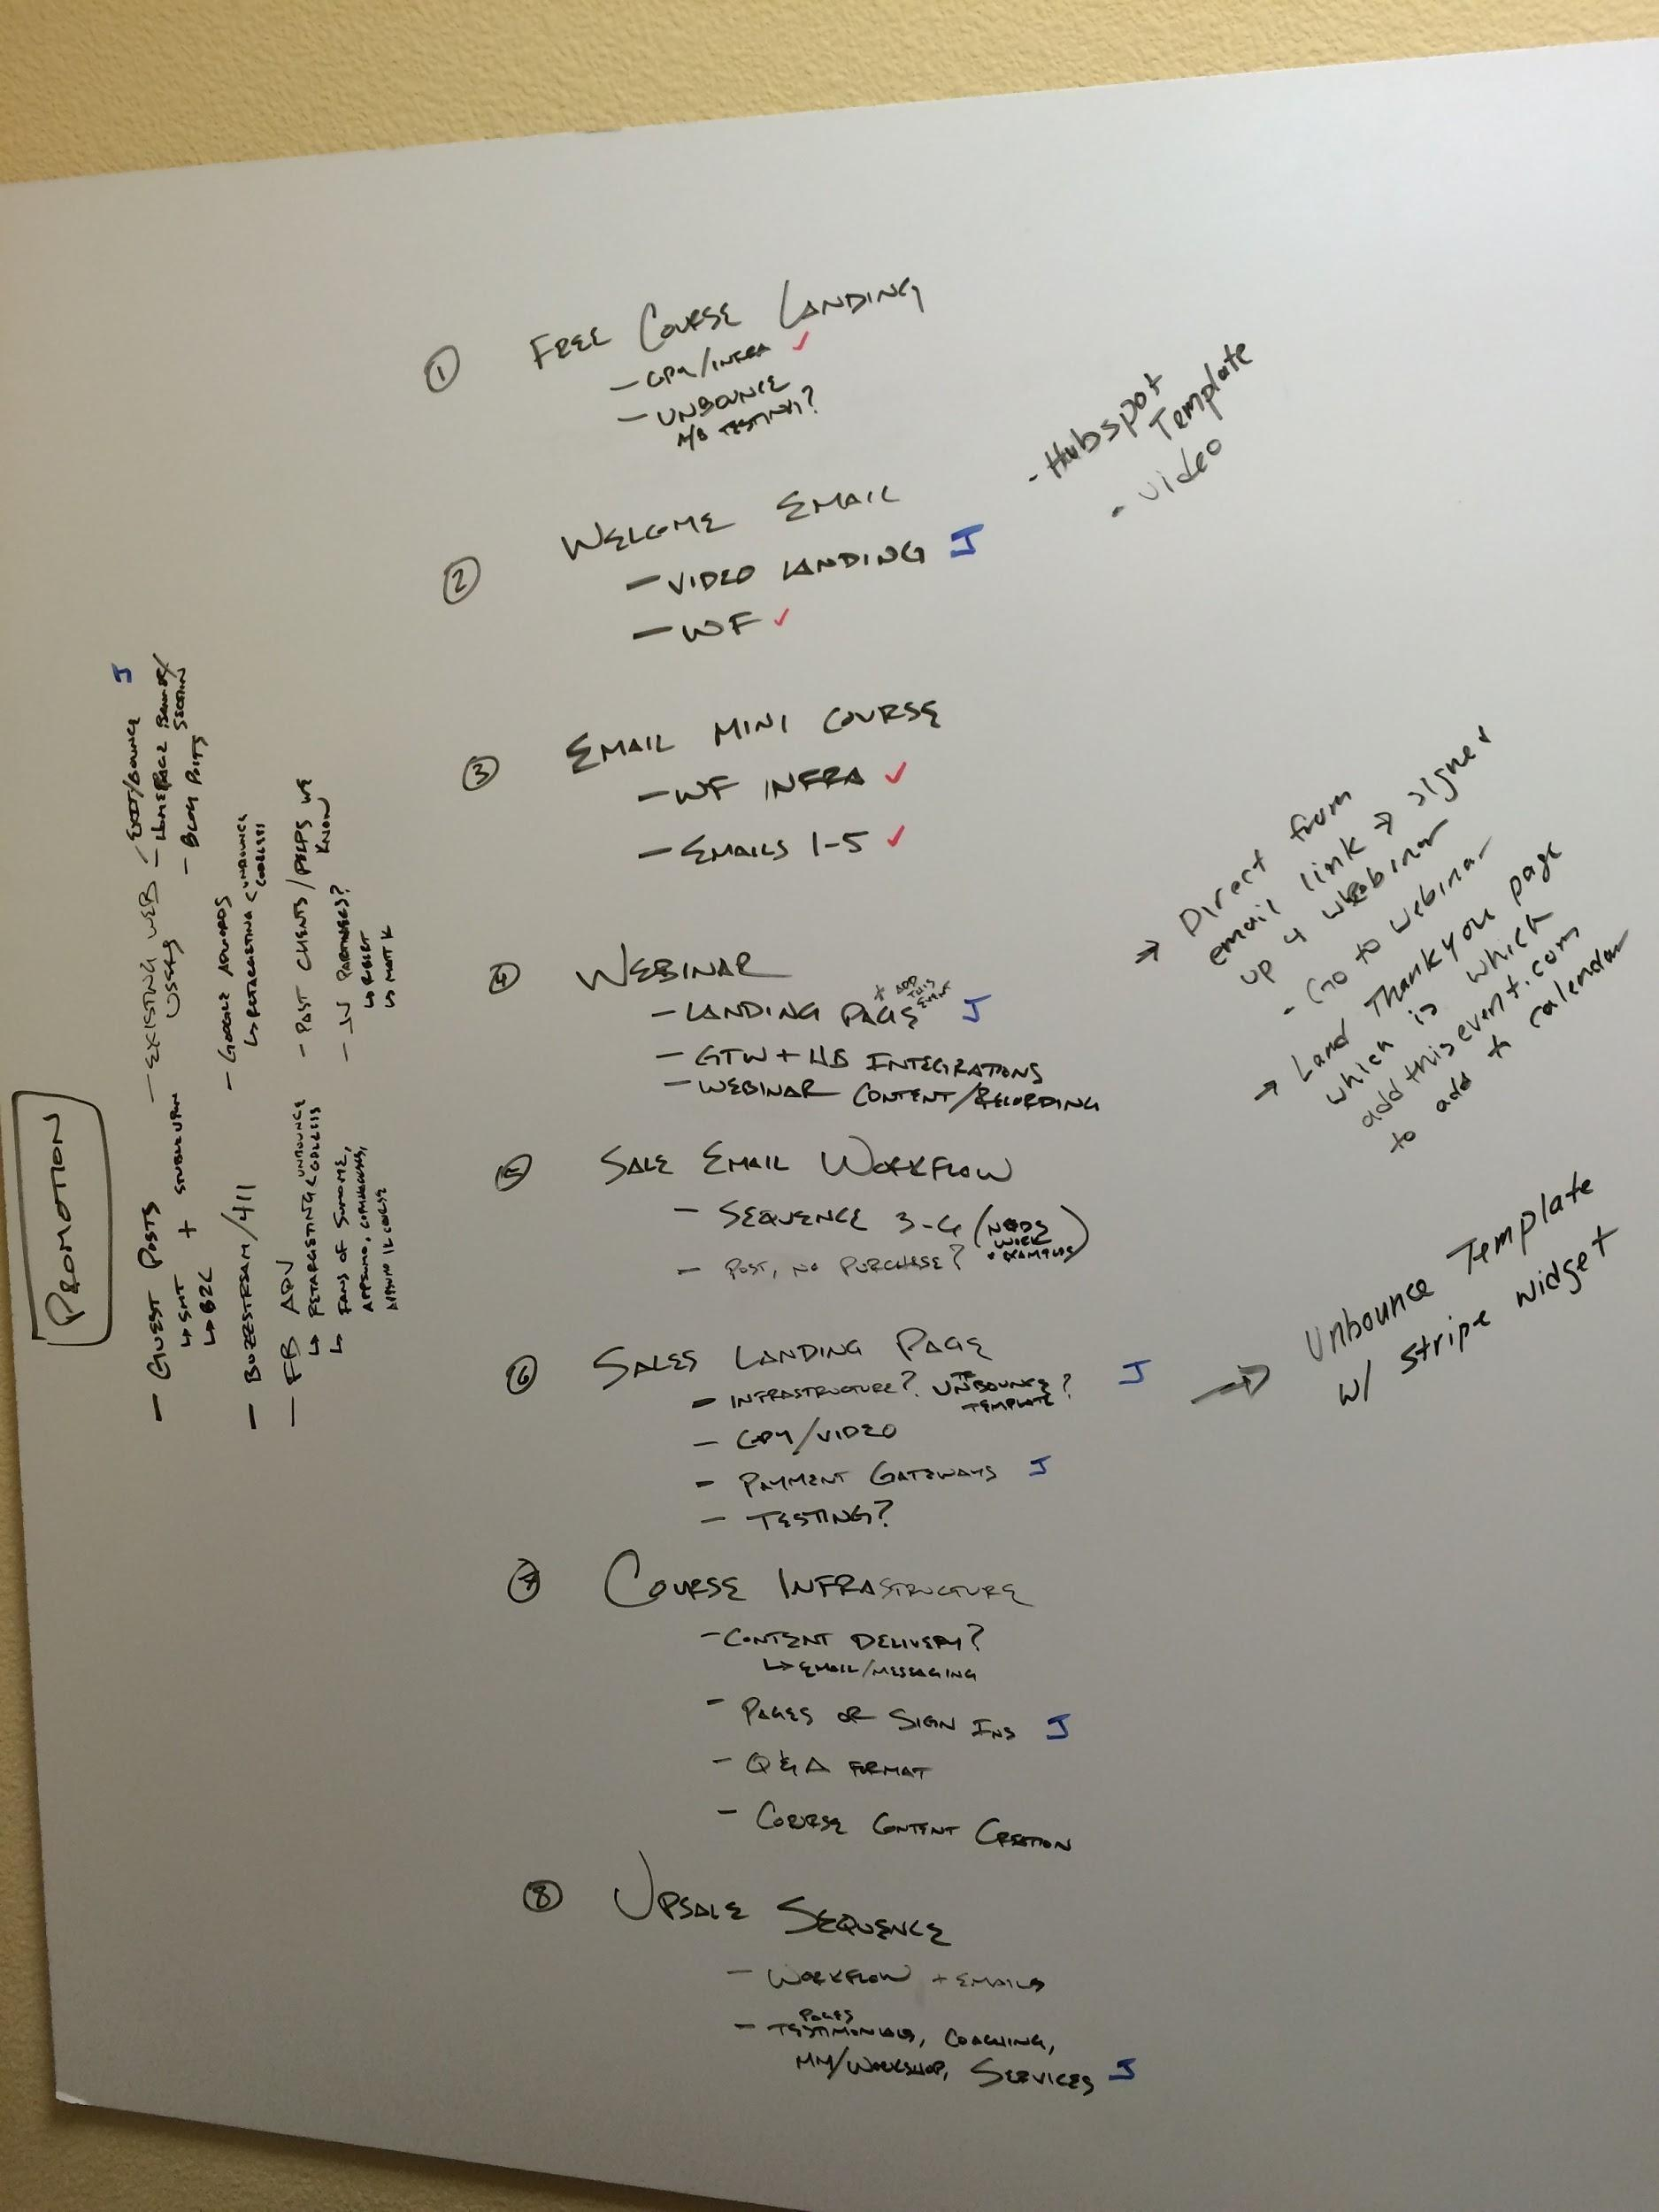 whiteboards for campaign optimization